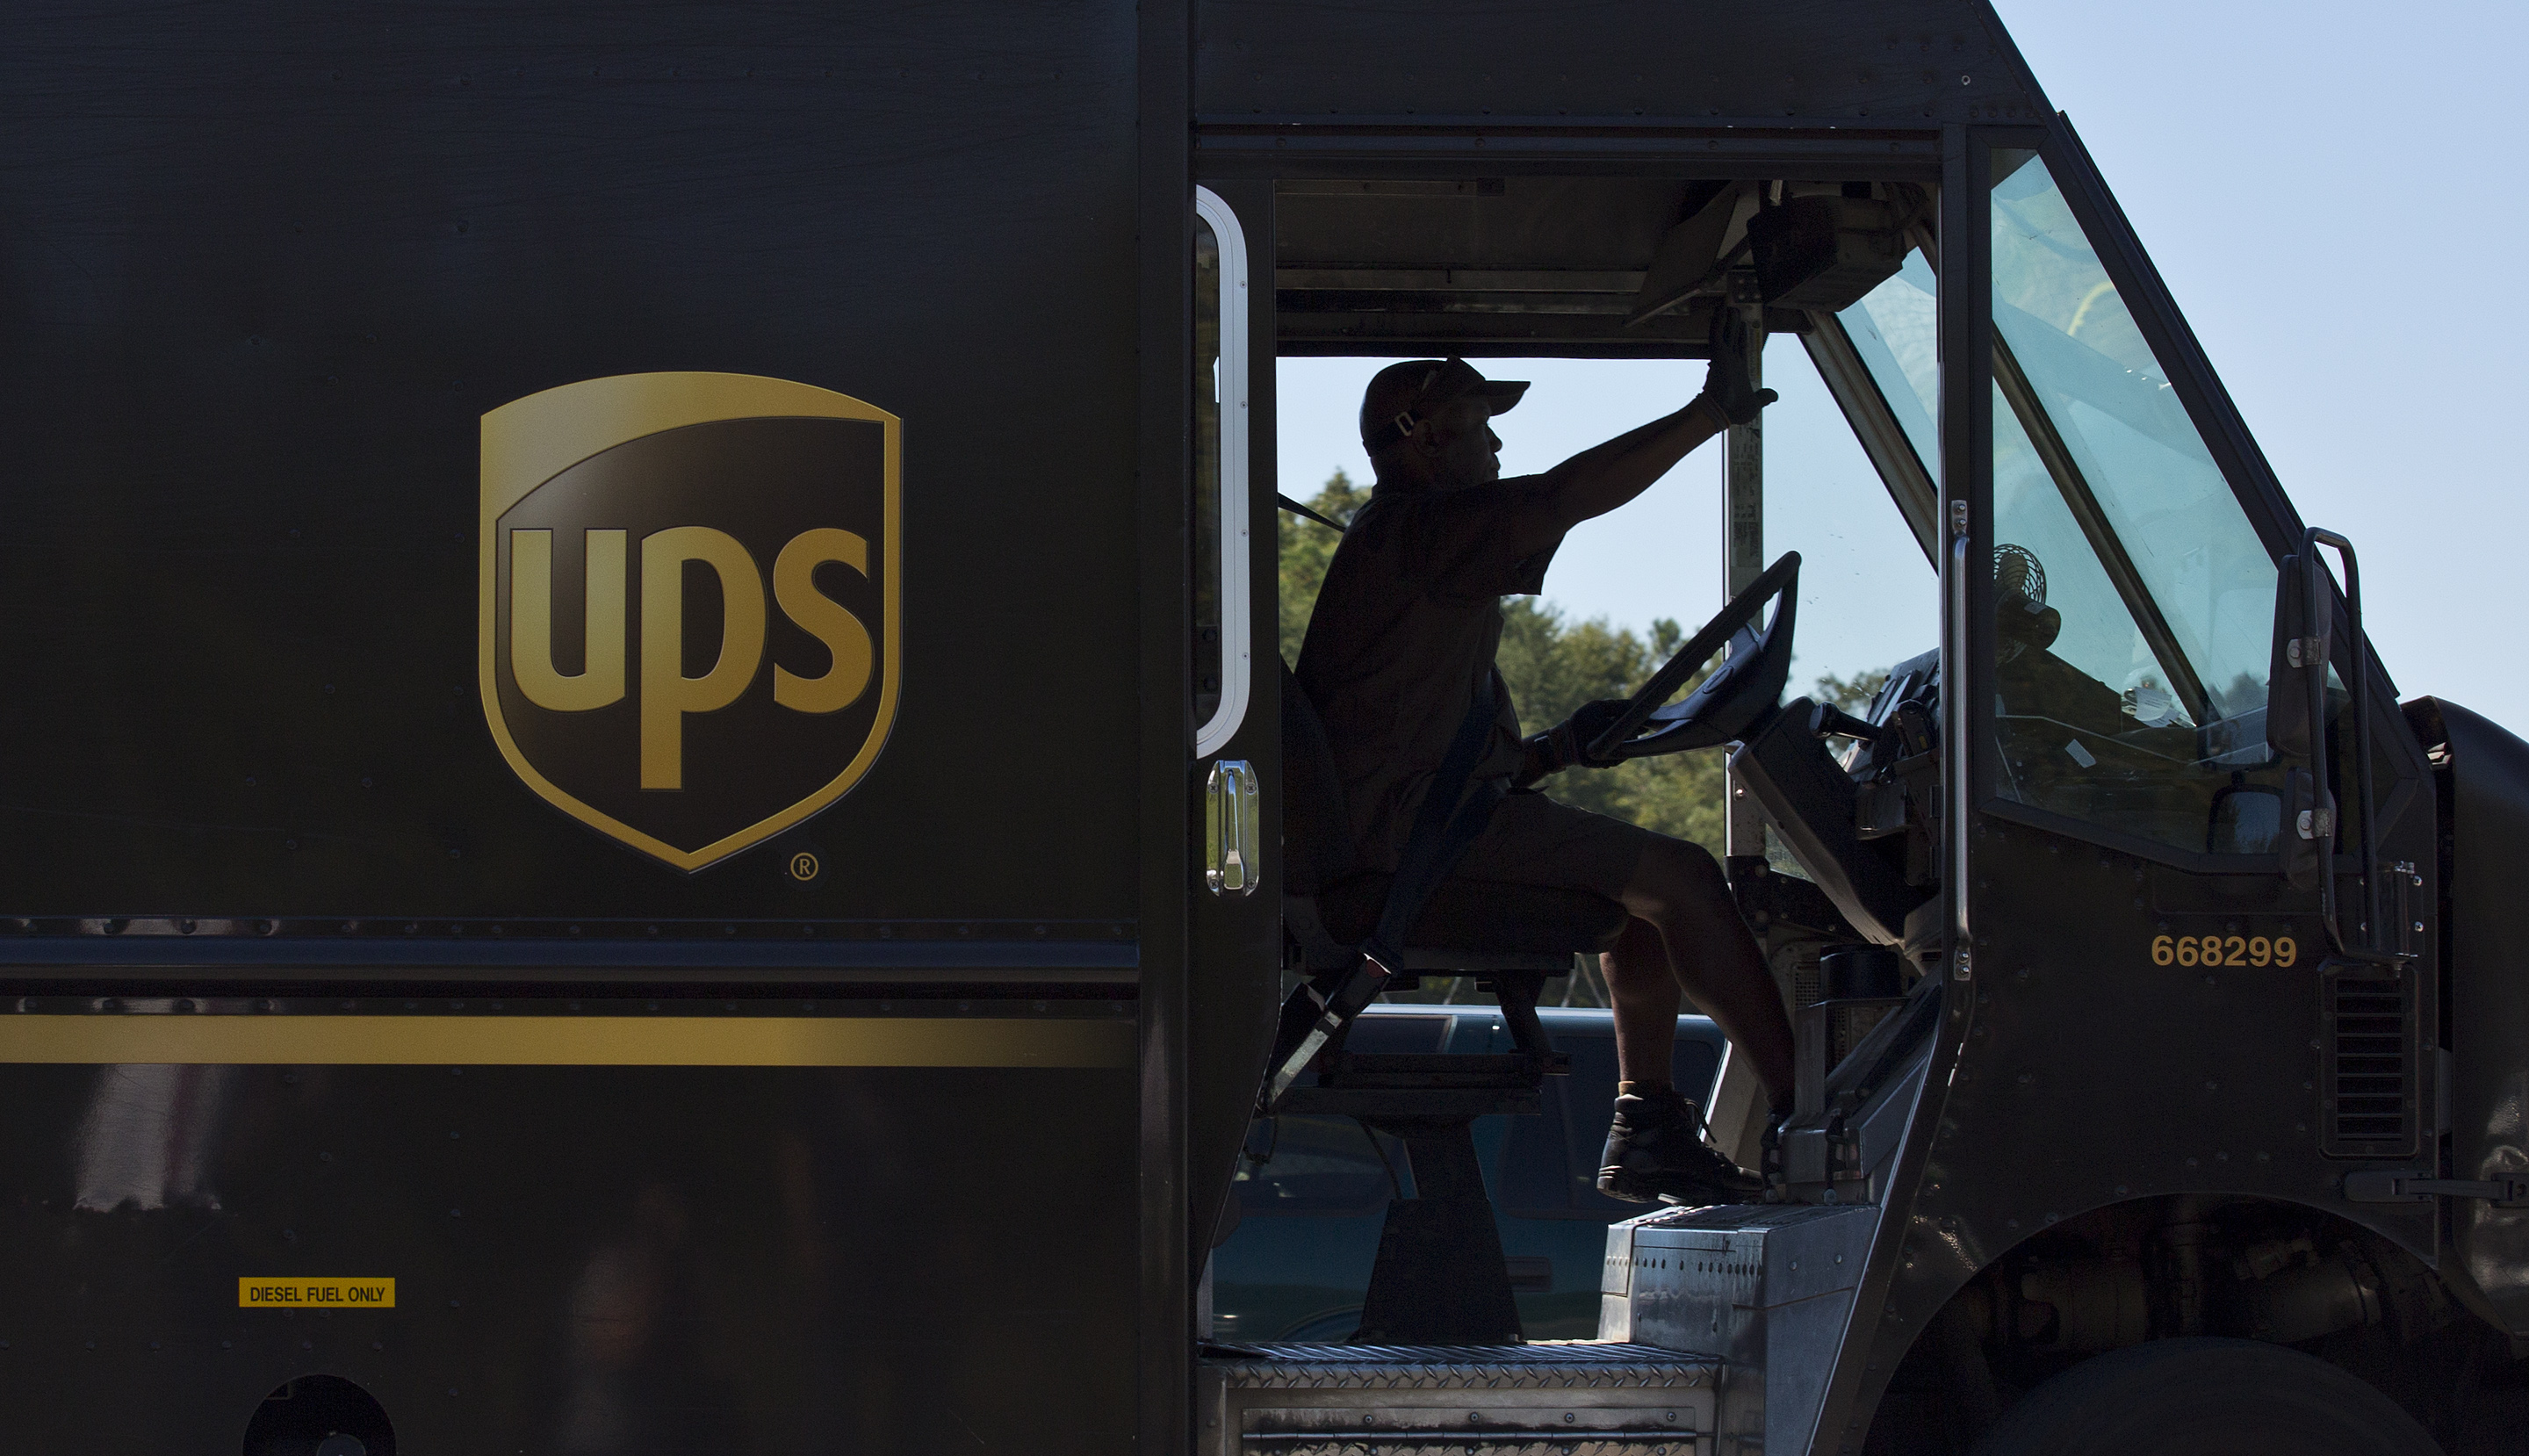 You can now track your UPS packages live on a map — Quartz